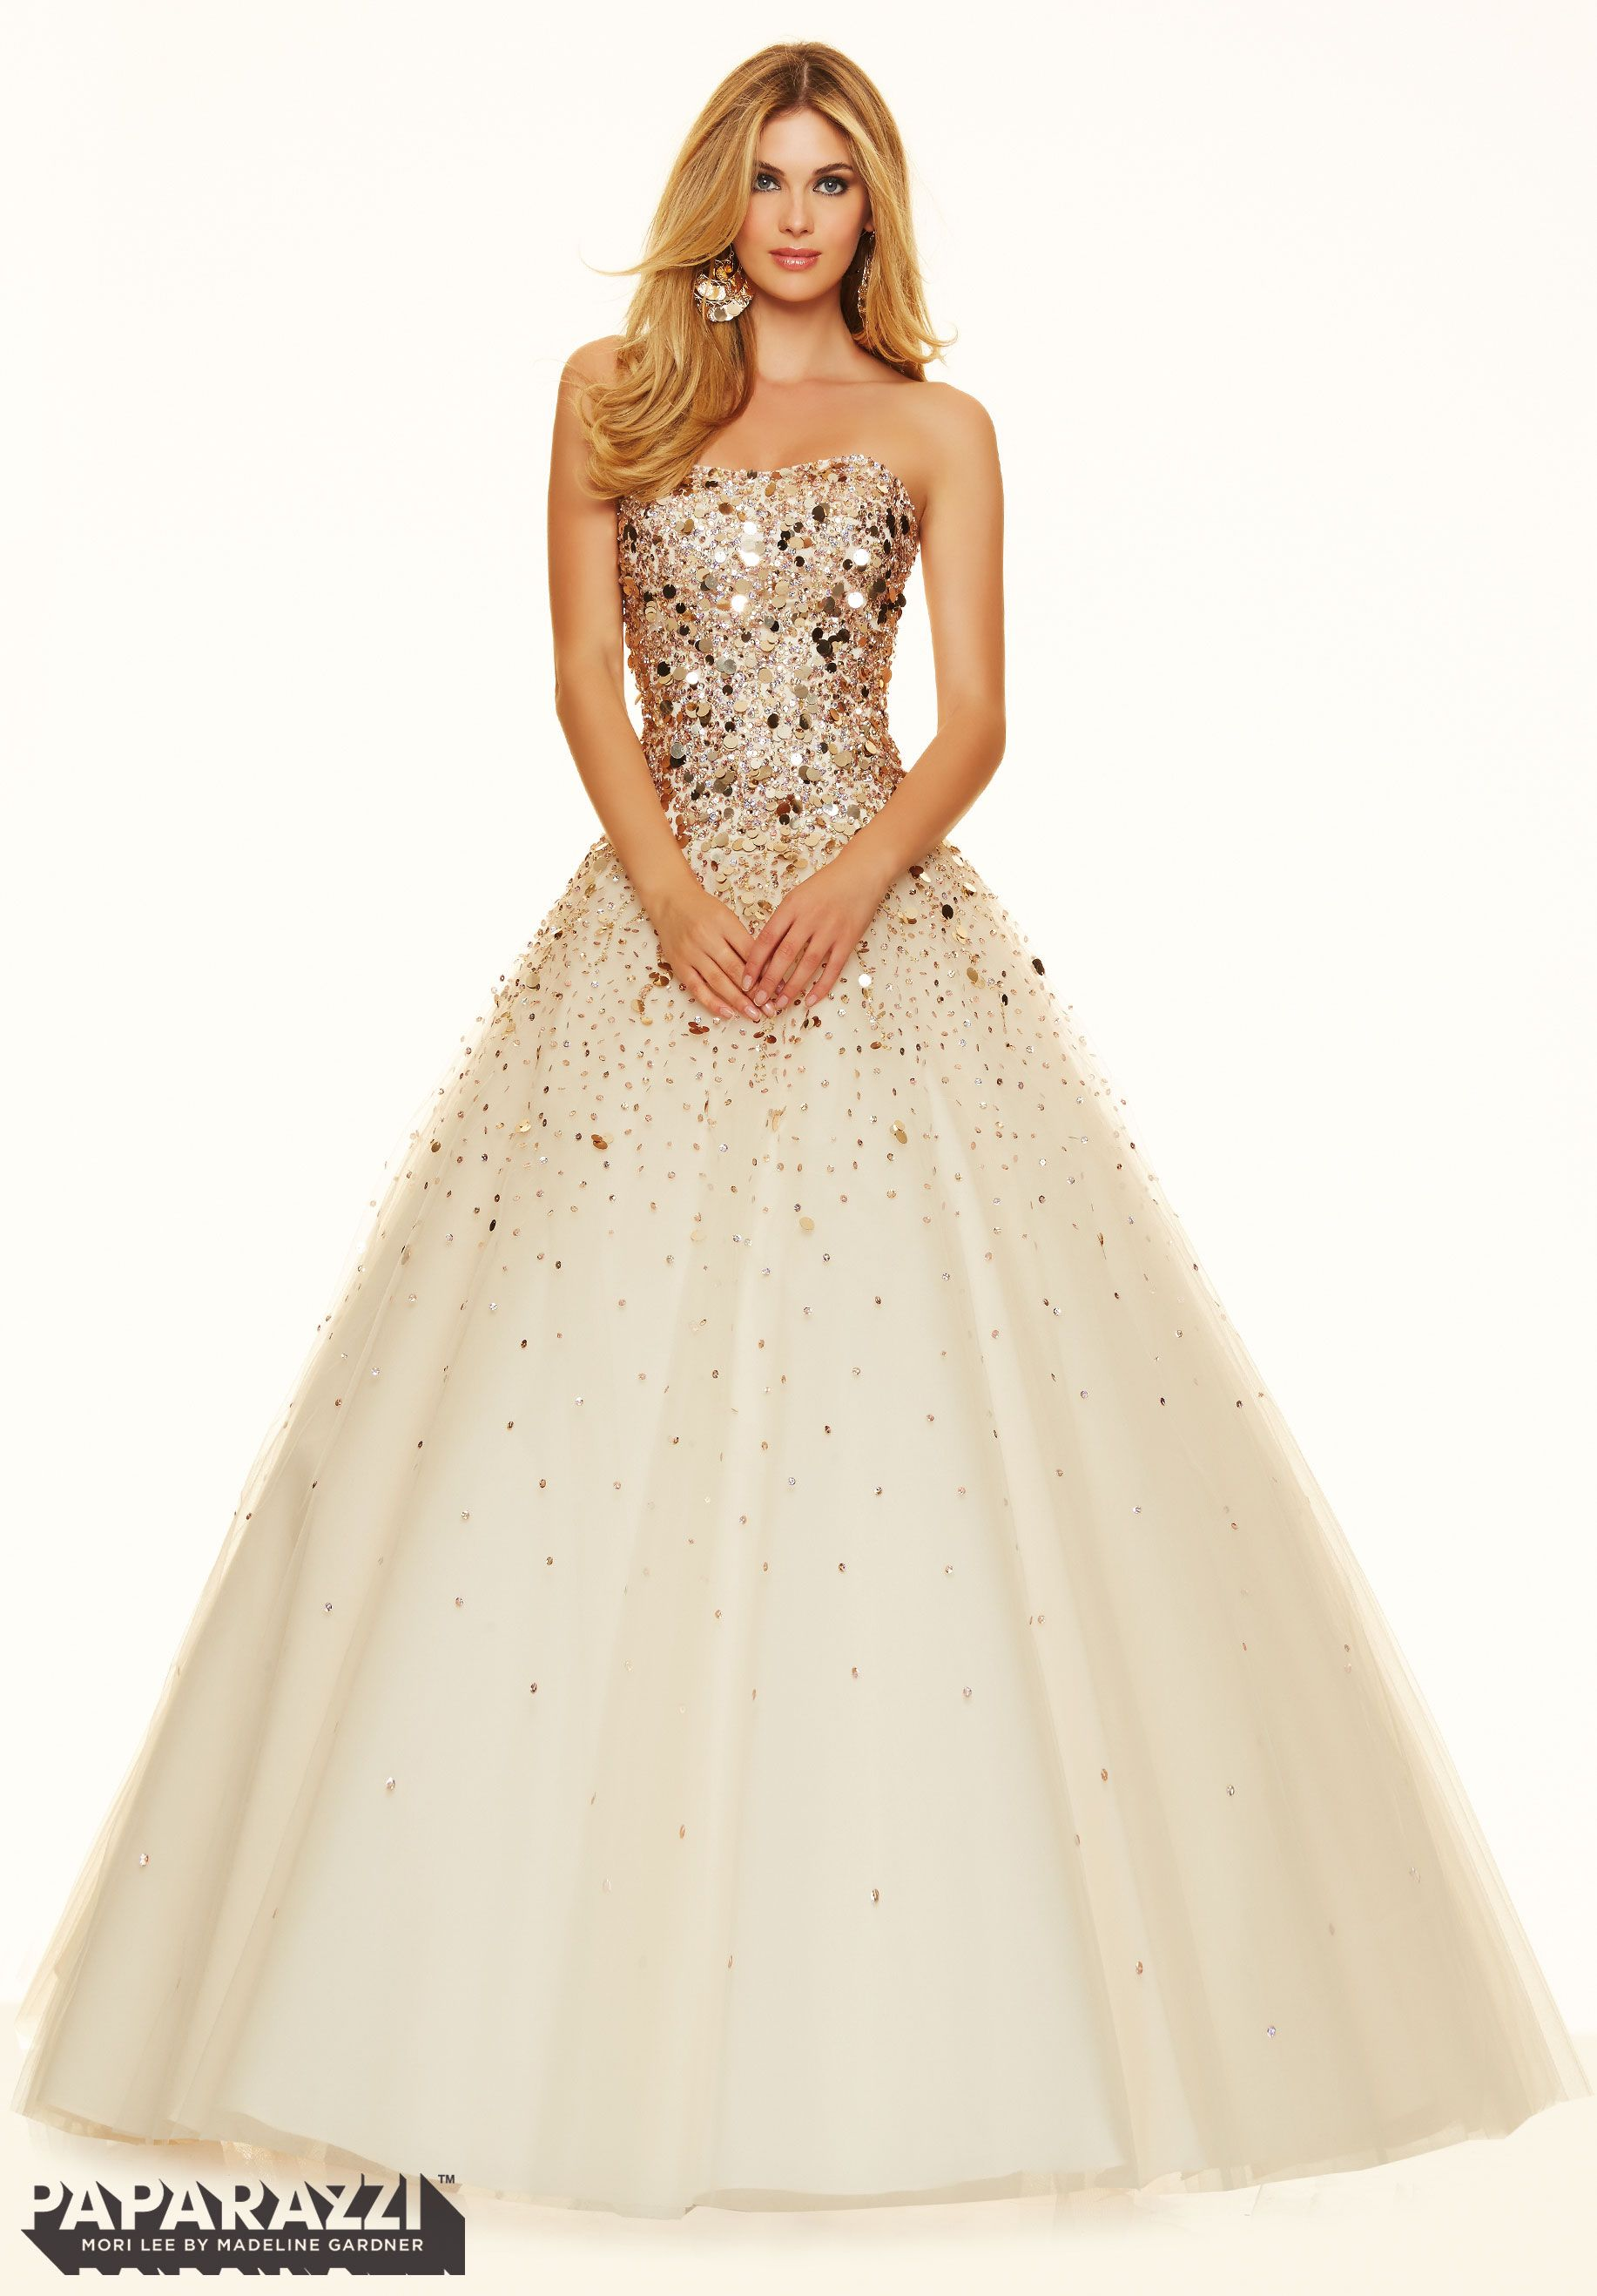 Ball gown prom dresses 2014 - Prom Dresses By Paparazzi Prom Beaded Tulle Ball Gown Corset Back Closure Colors Available